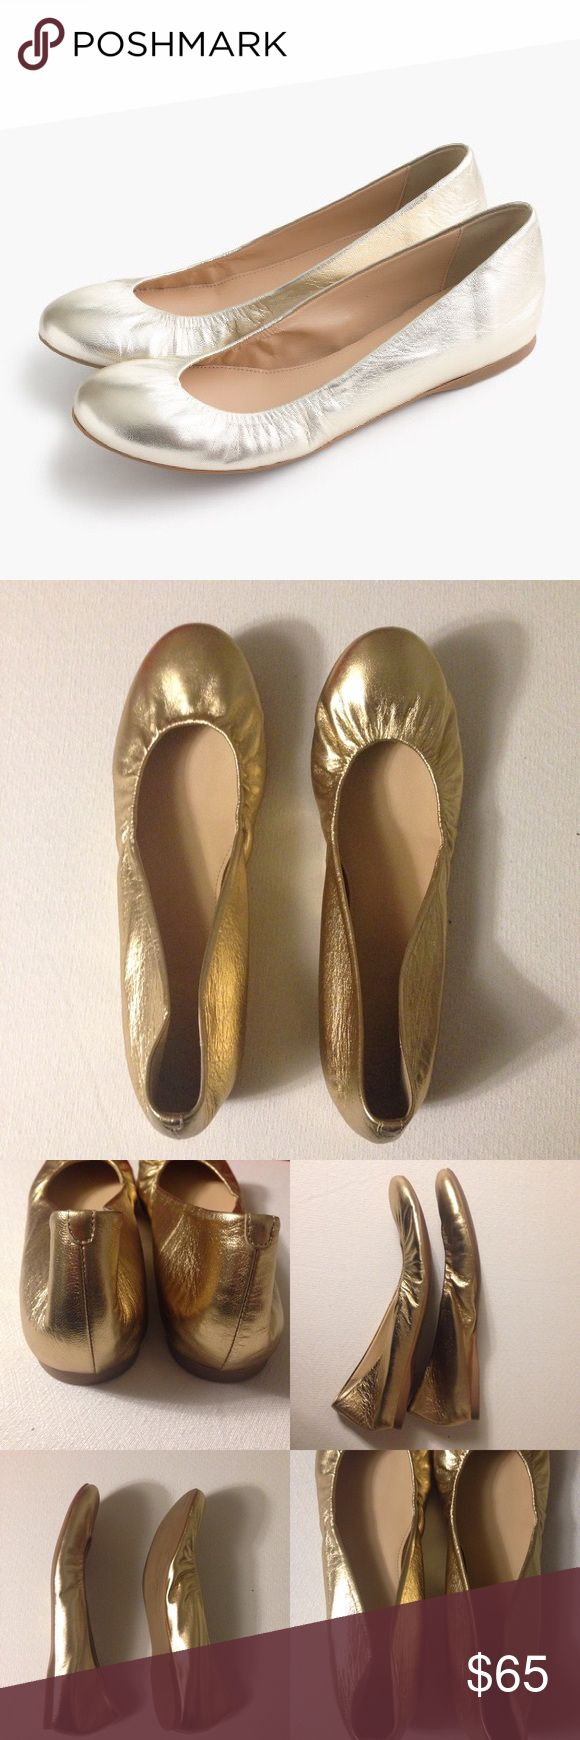 J. Crew Gold Ballet Flats - Cece Metallic Flats J. Crew Gold Ballet Flats - Cece. Excellent Pre-Worn Condition. No Visible Stains, Fading or Flaws. Retail $135.00 #0212172601 ✨Please keep in mind that measurements are provided only as a guide and are approximate.  Color appearance may vary depending on your monitor settings. J. Crew Shoes Flats & Loafers